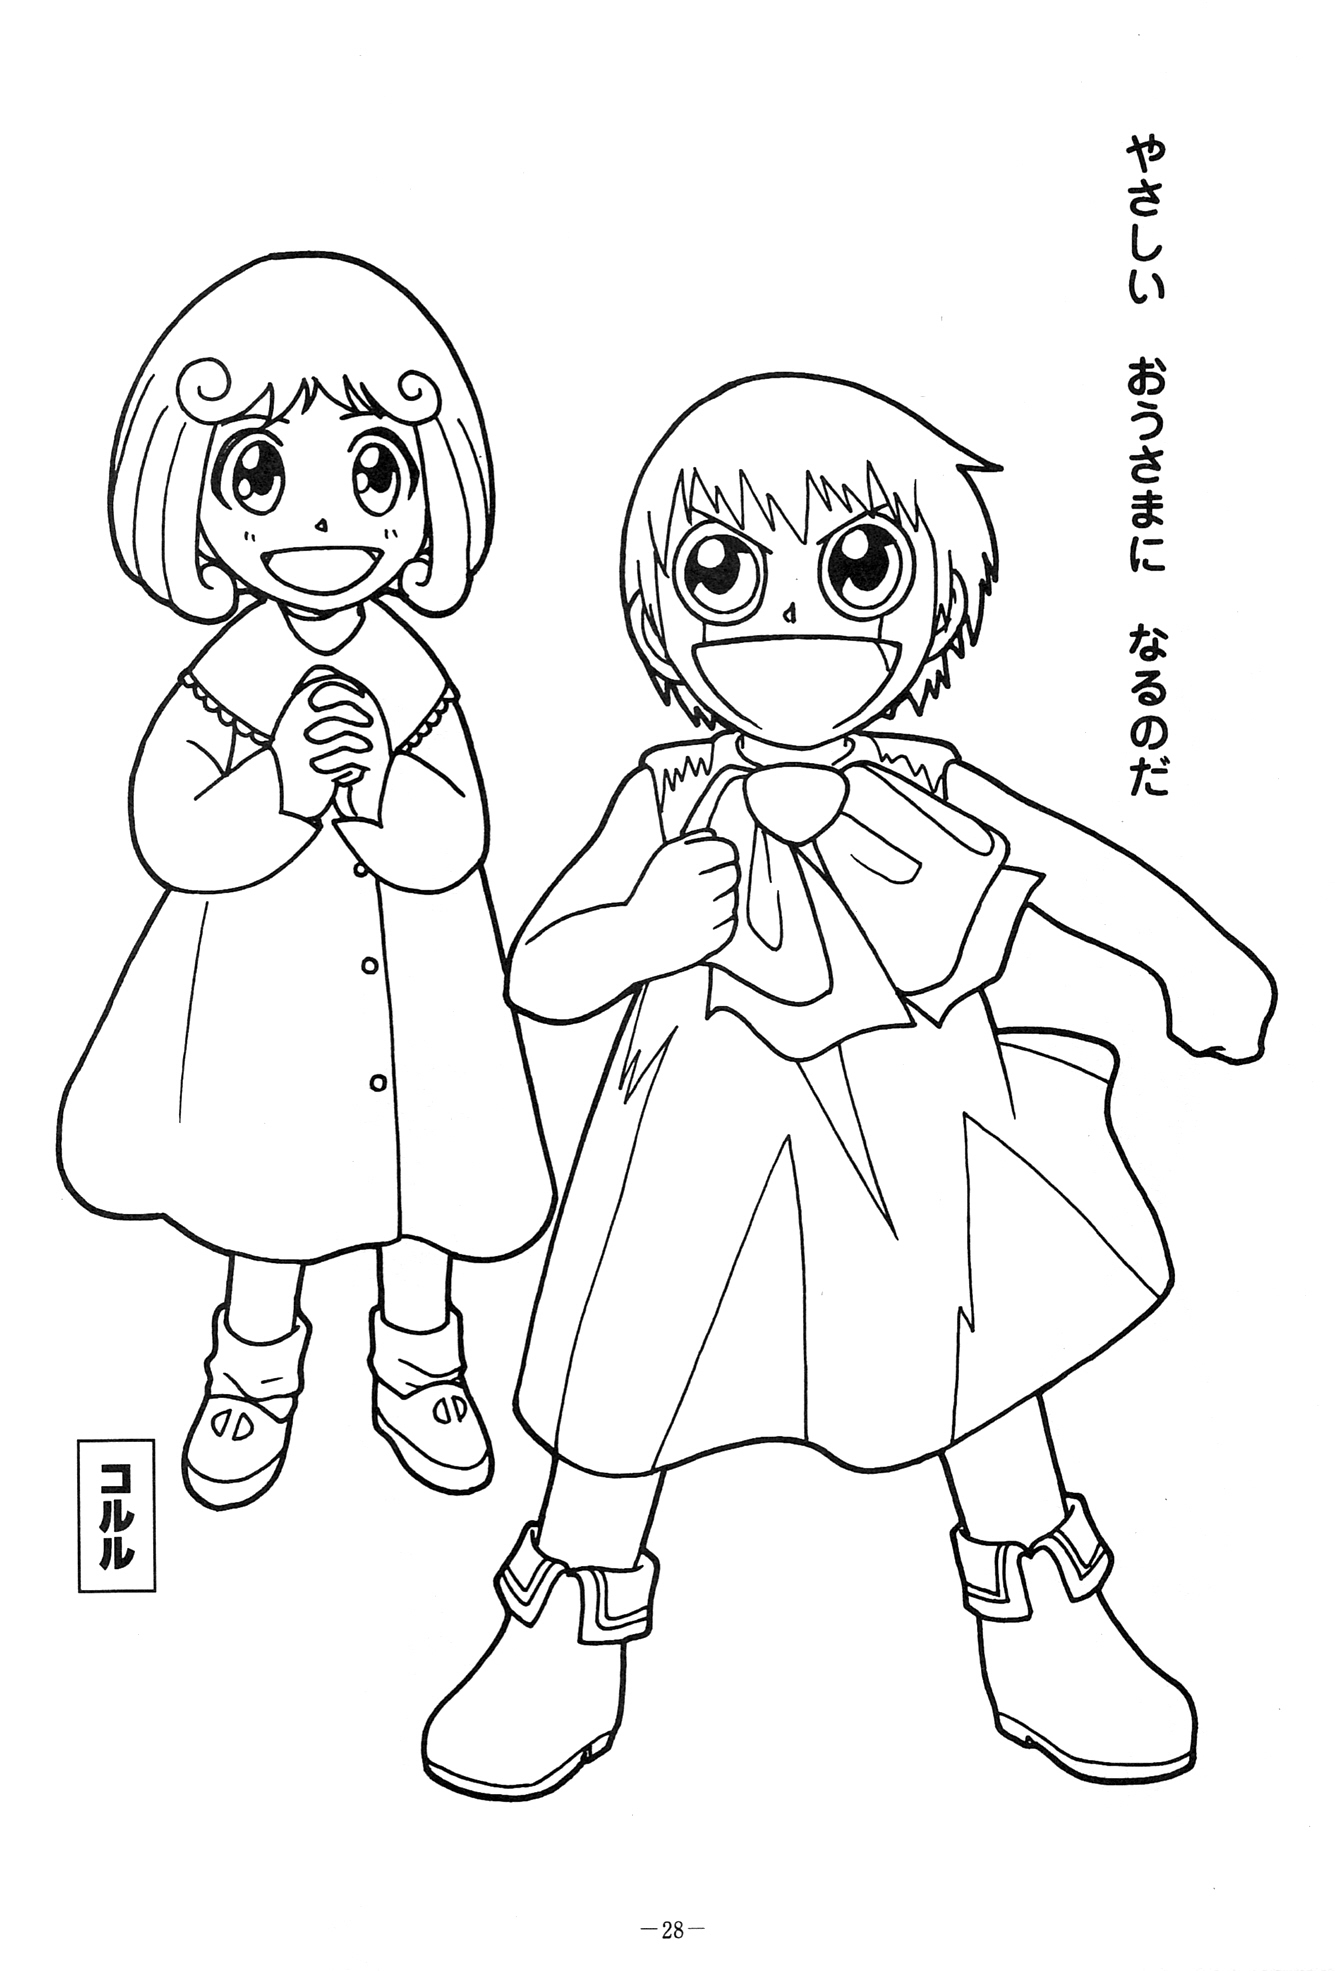 zatch bell coloring pages | Immagini da colorare - Gashbell